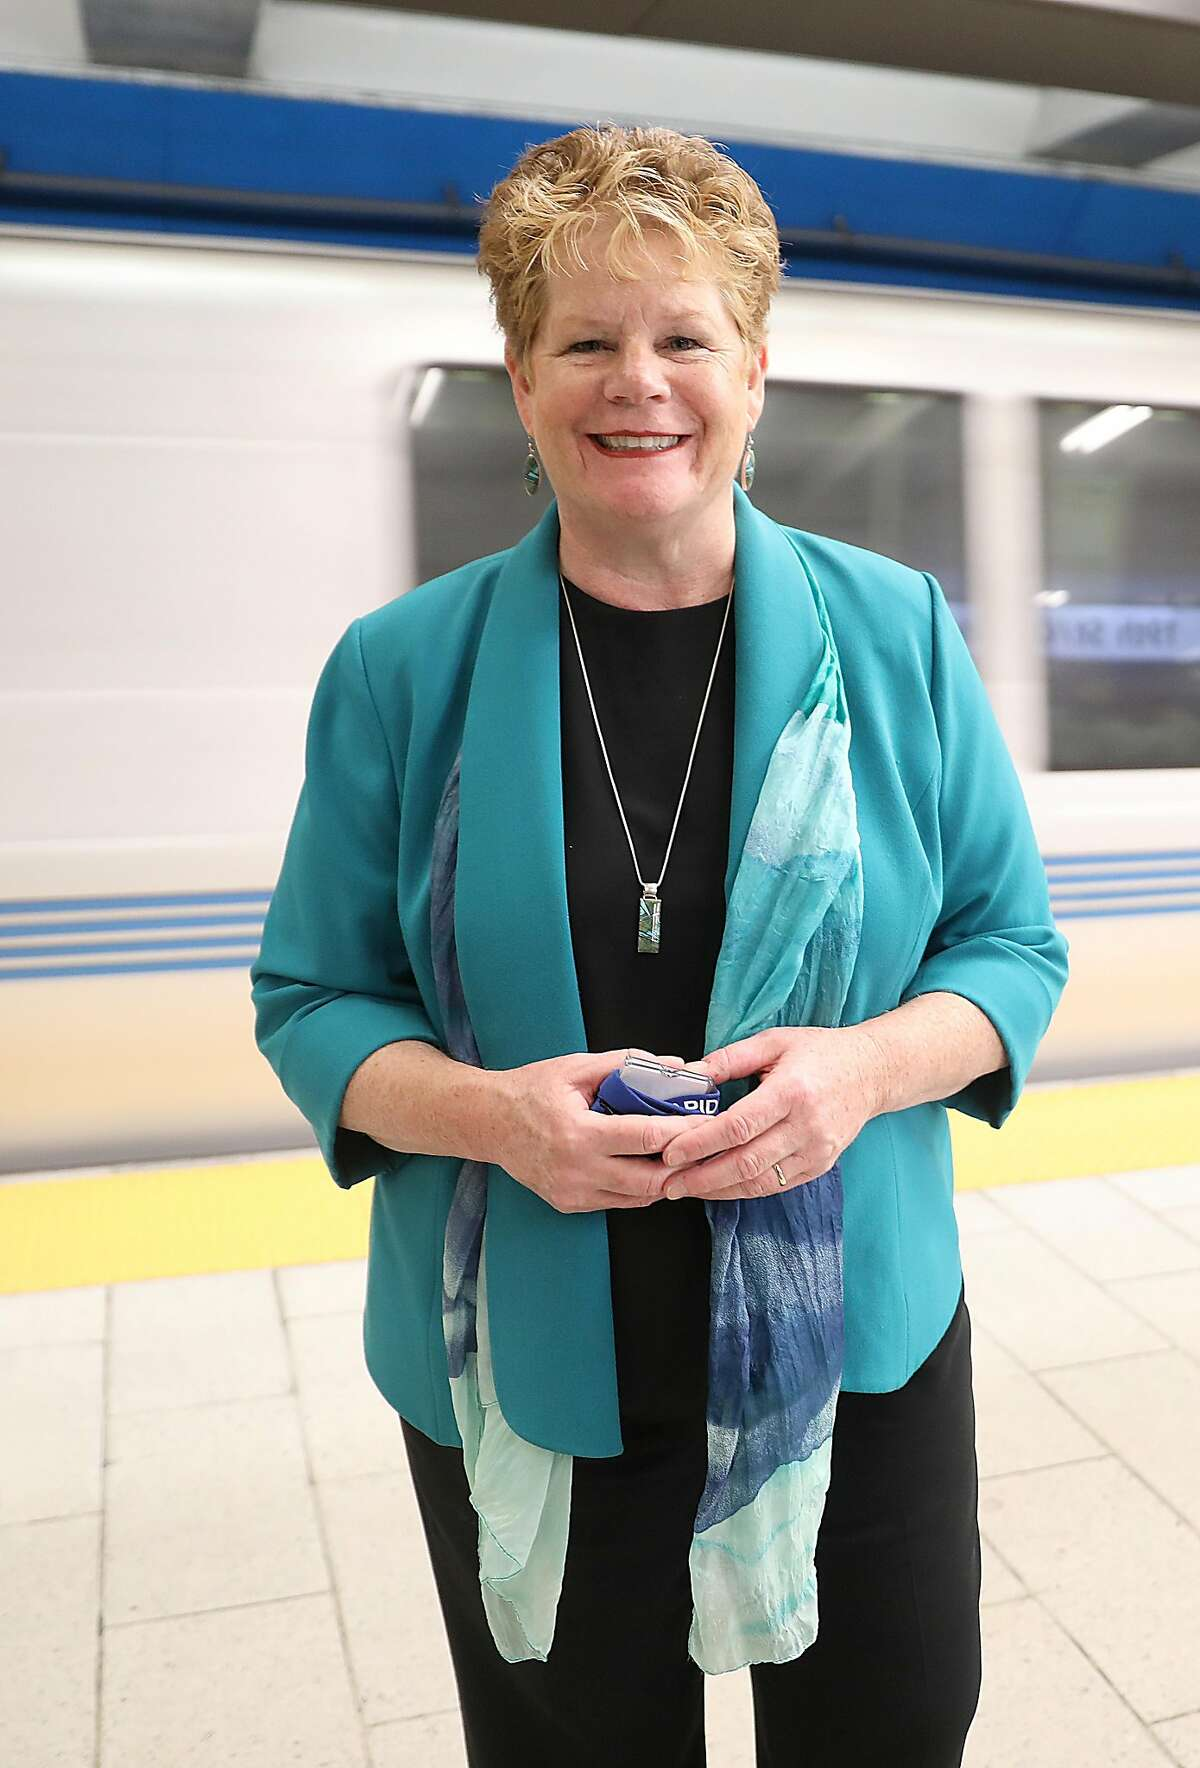 BART General Manager Grace Crunican stands on a platform at the 19th Street station on Friday, Nov. 2, 2018, in Oakland, Calif.